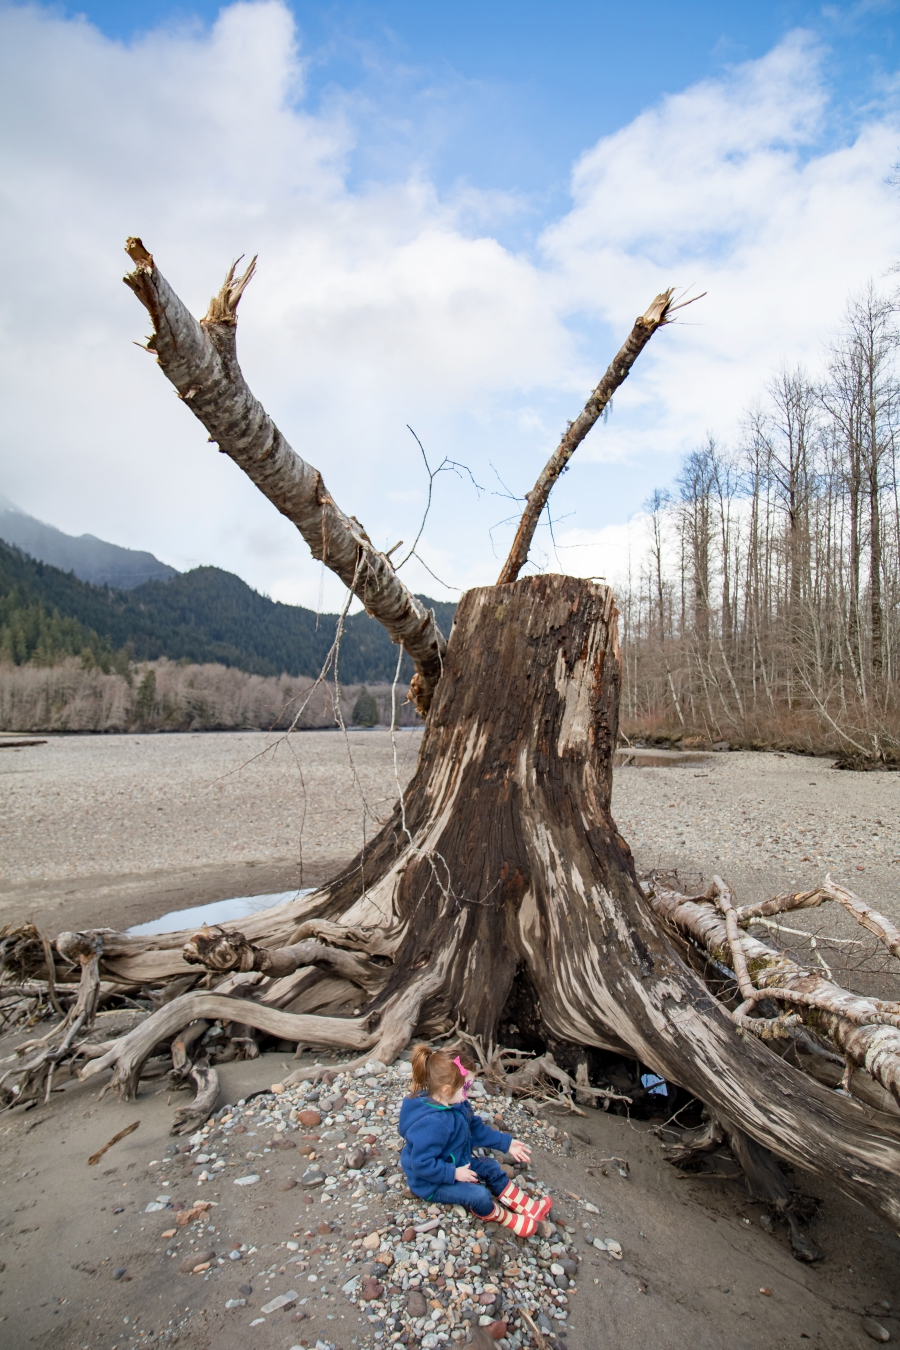 Squamish River Estuary, preschooler sitting beside a large stump